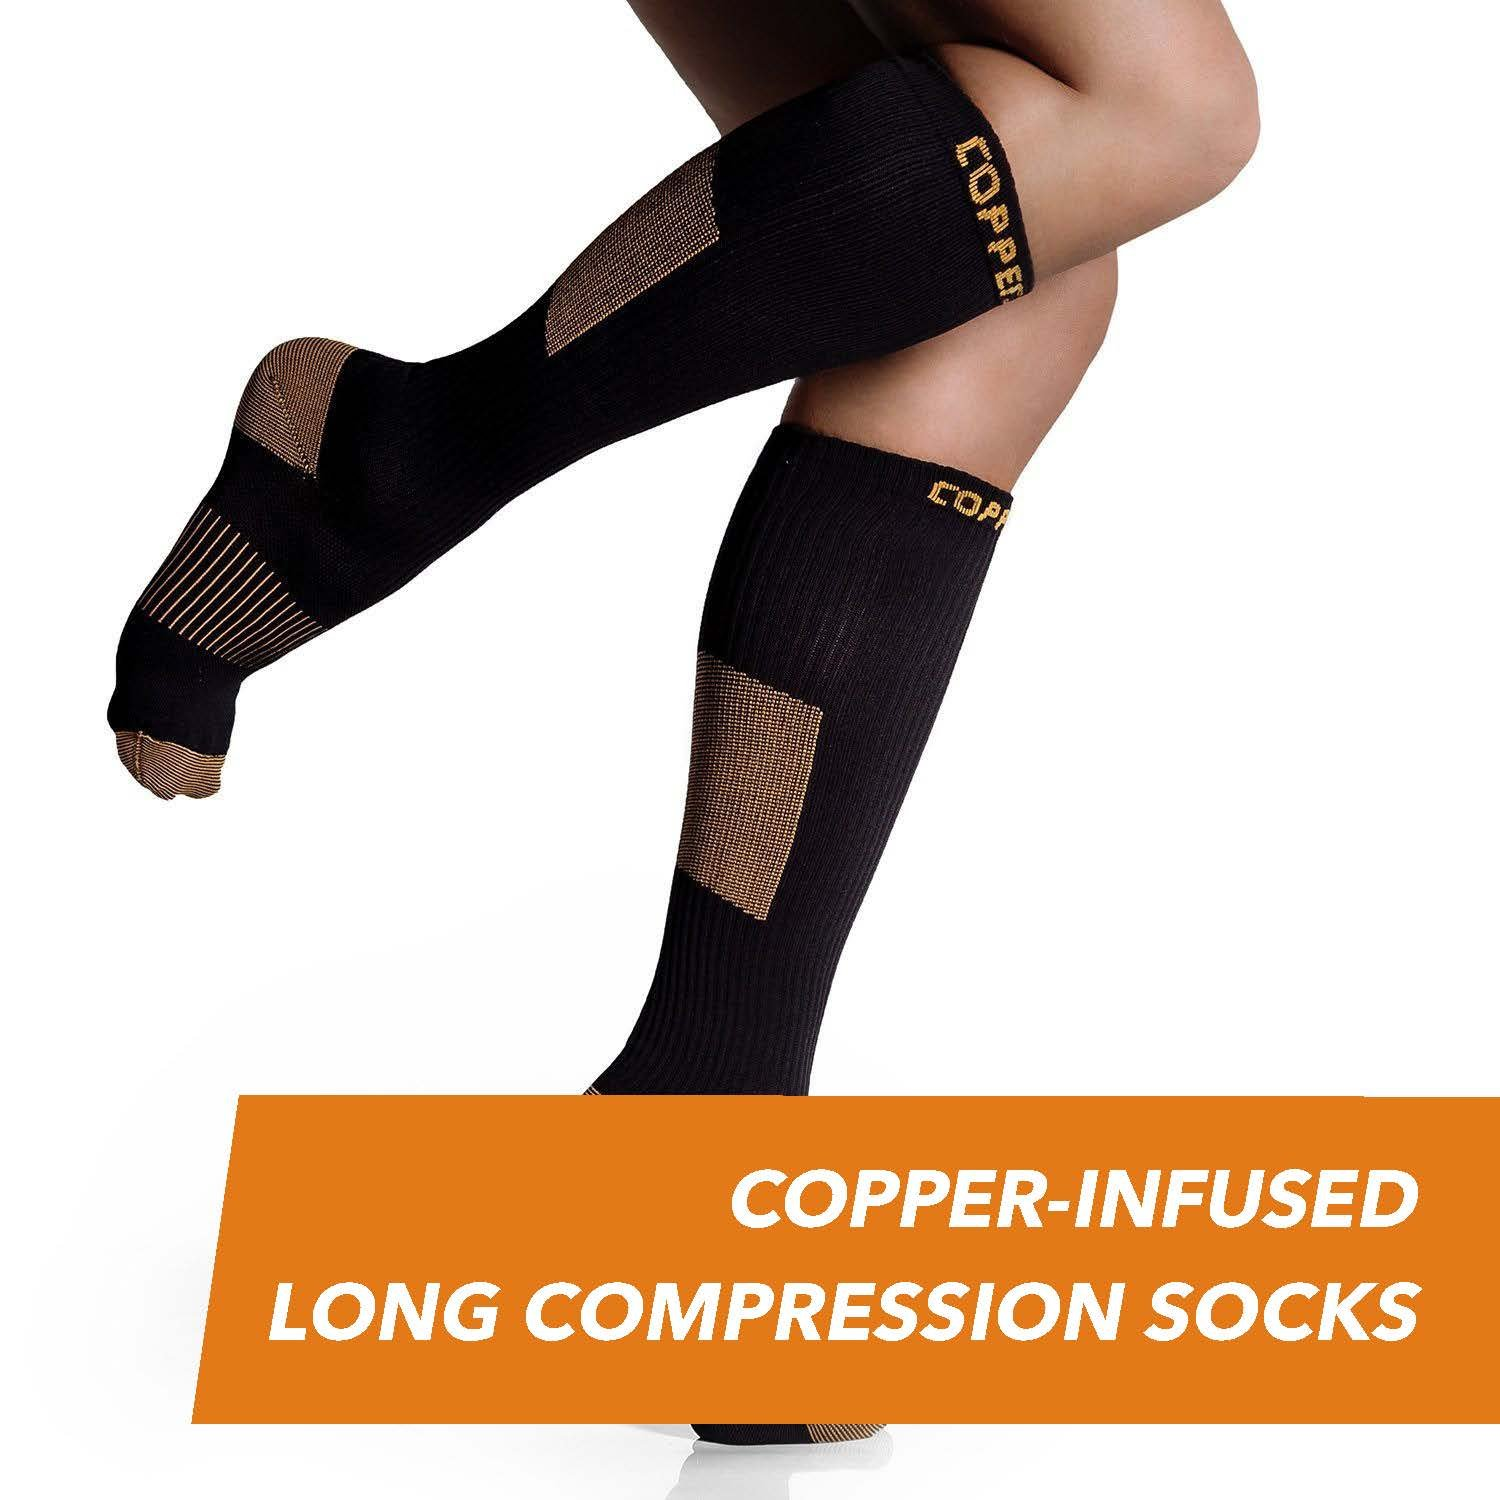 6704de8987 CopperJoint - Copper-Infused Long Compression Socks, Comfortable and  Durable Design Promotes Blood Circulation in Feet and Legs for All  Lifestyles, Pair